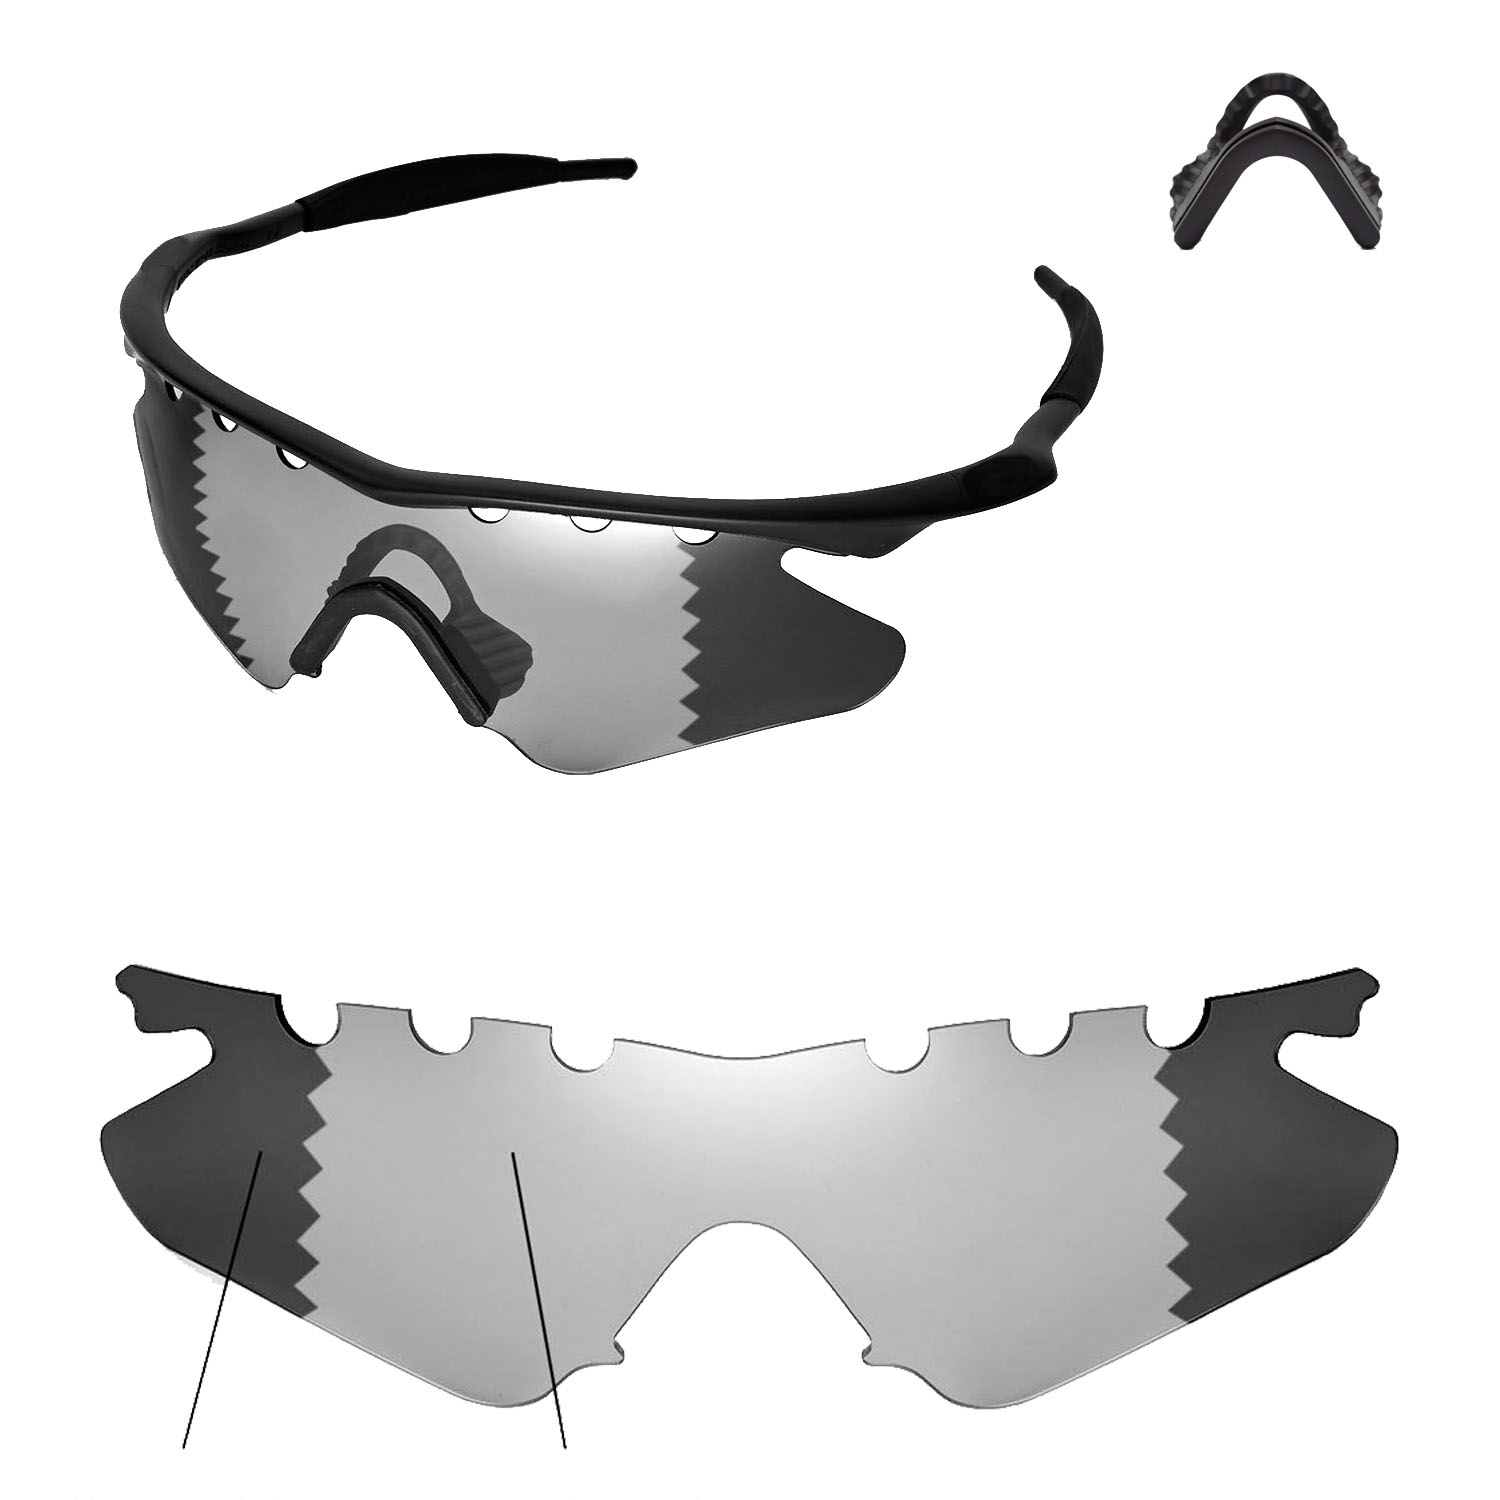 b7a94e1738 Details about WL Polarized Transition Vented Lenses + Black Nosepads For  Oakley M Frame Heater